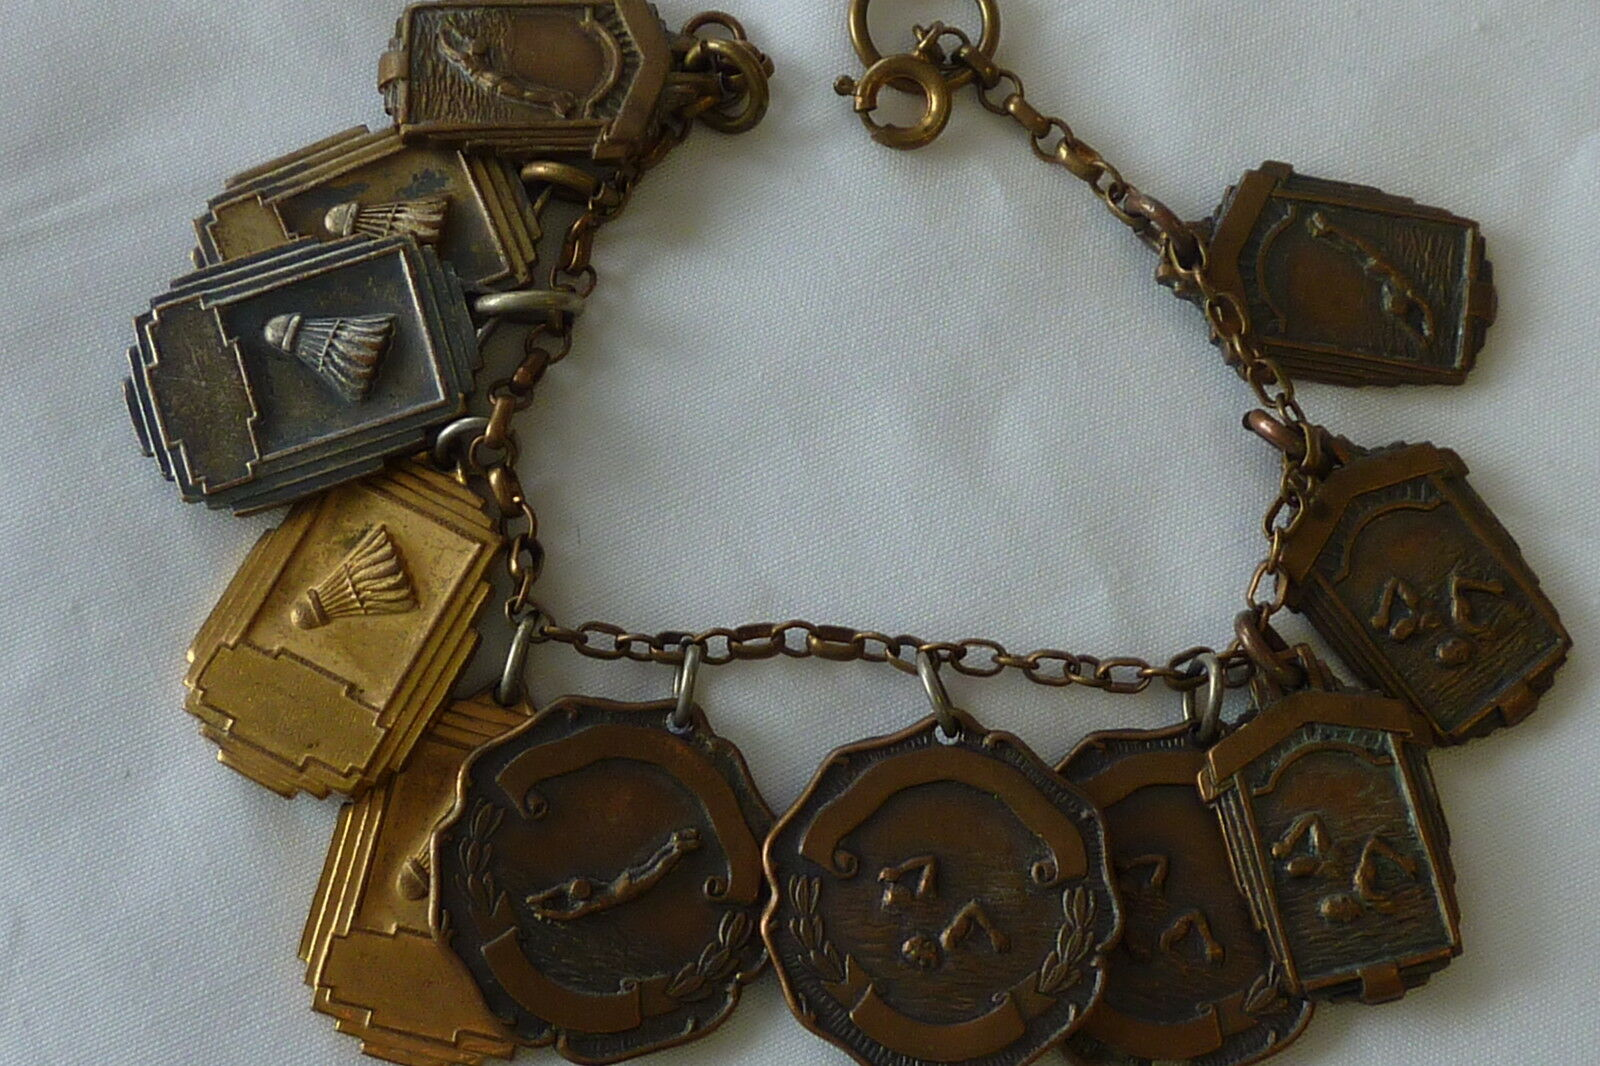 COOL EARLY 40'S CHAMPIONSHIP CHARM  BRACELET ASSORTED SPORTS  11 MEDALS I-3991